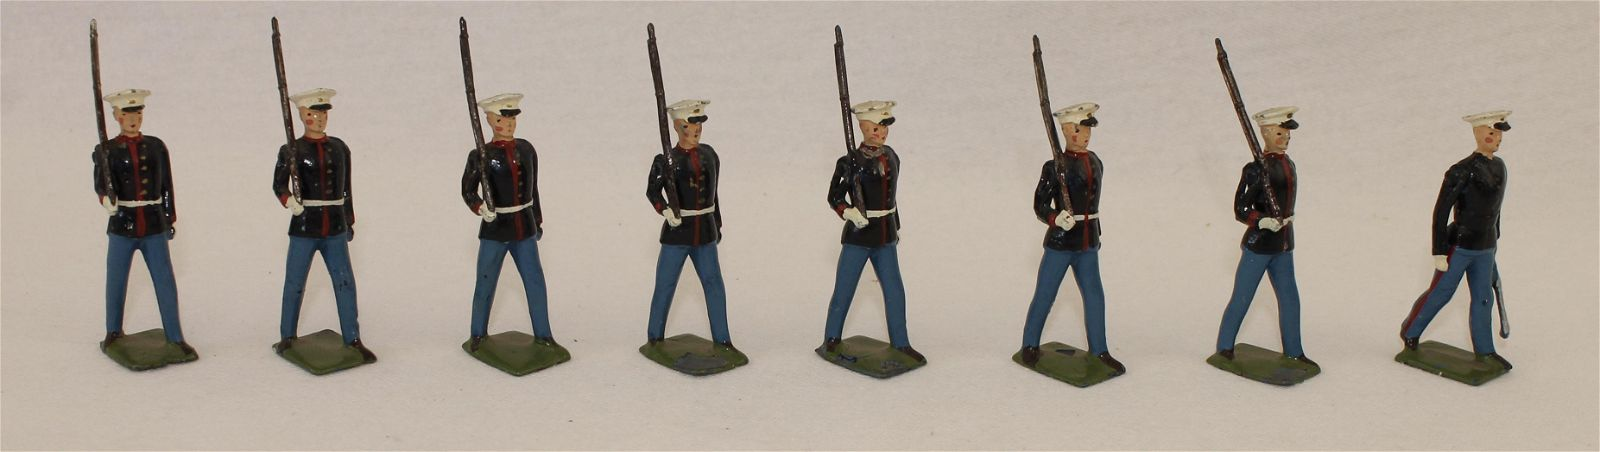 Britains Set 228 US Marine Corps with Officer